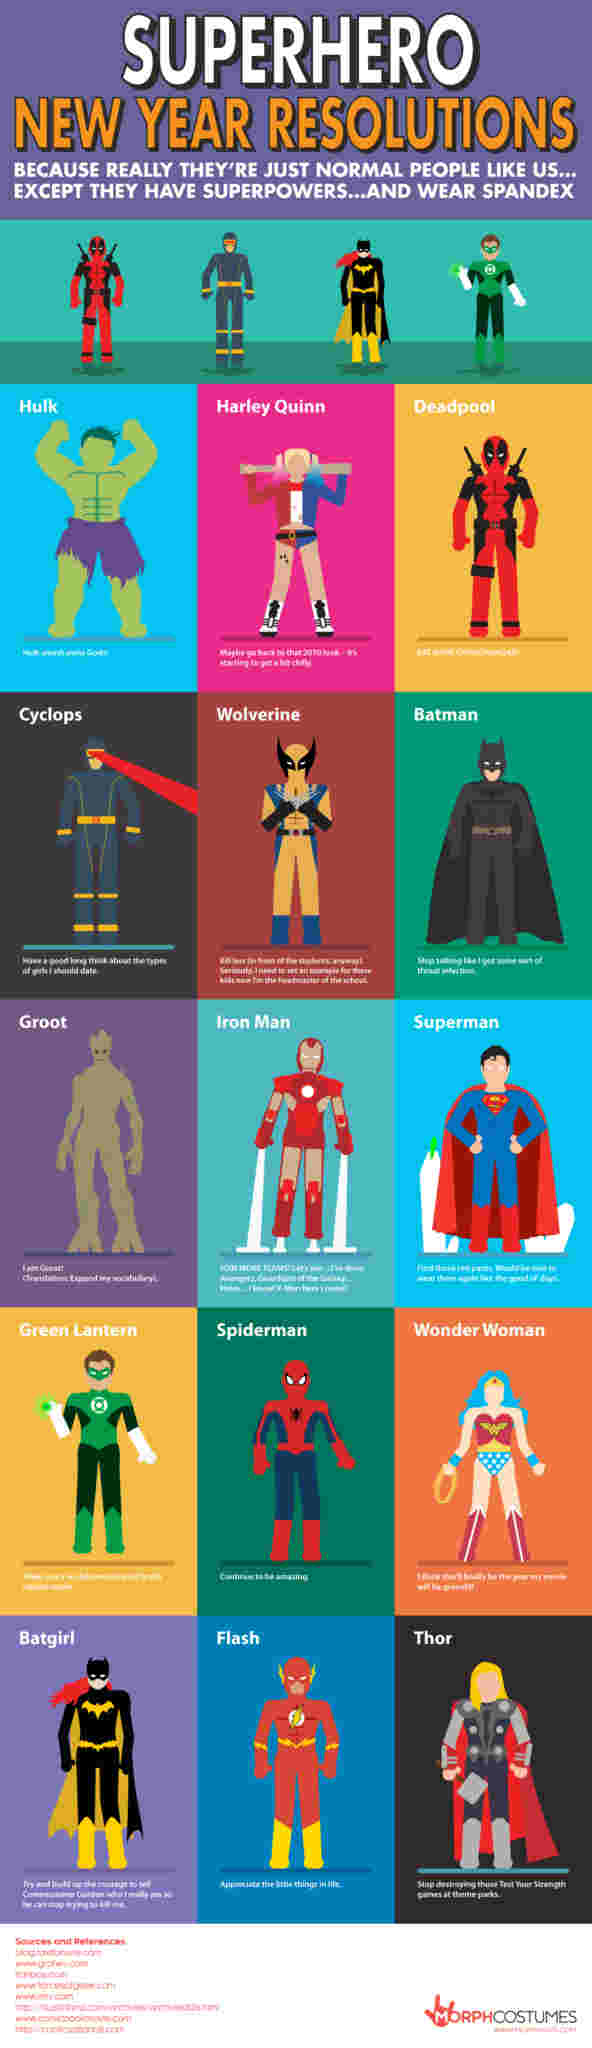 Superhero-New-Year-Resolutions-IG1